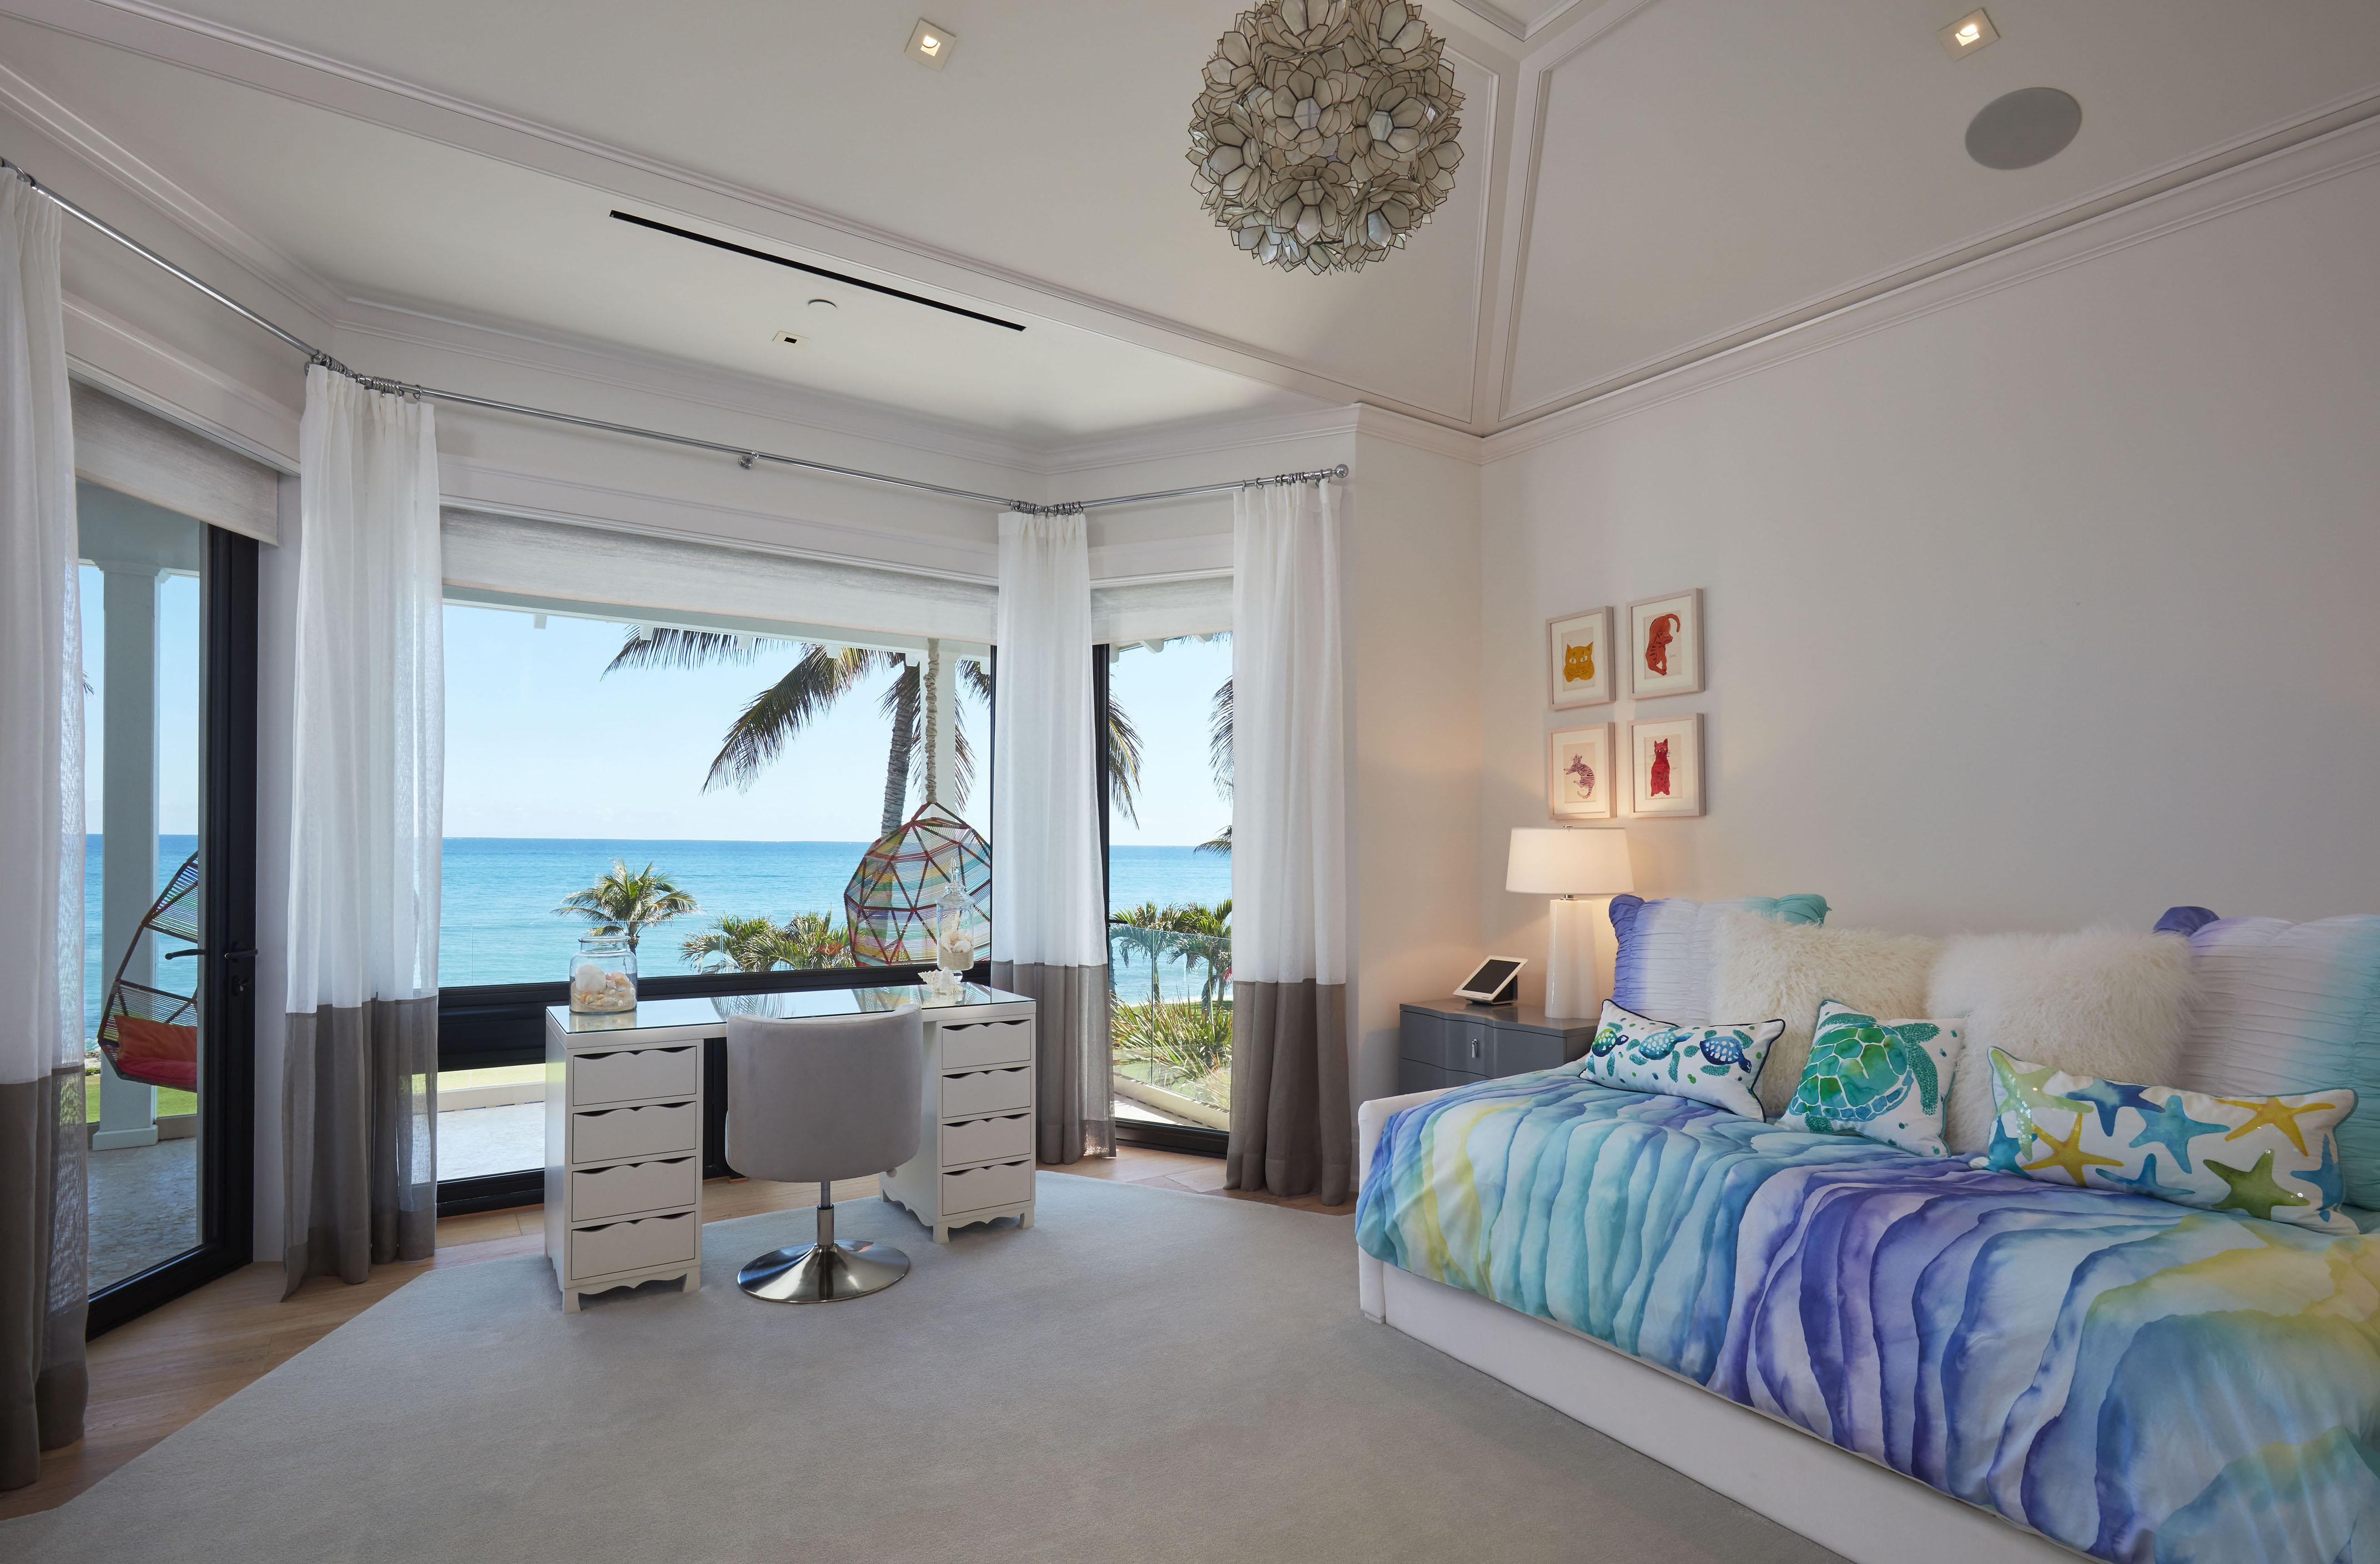 A study desk overlooks the ocean in one fantastic room